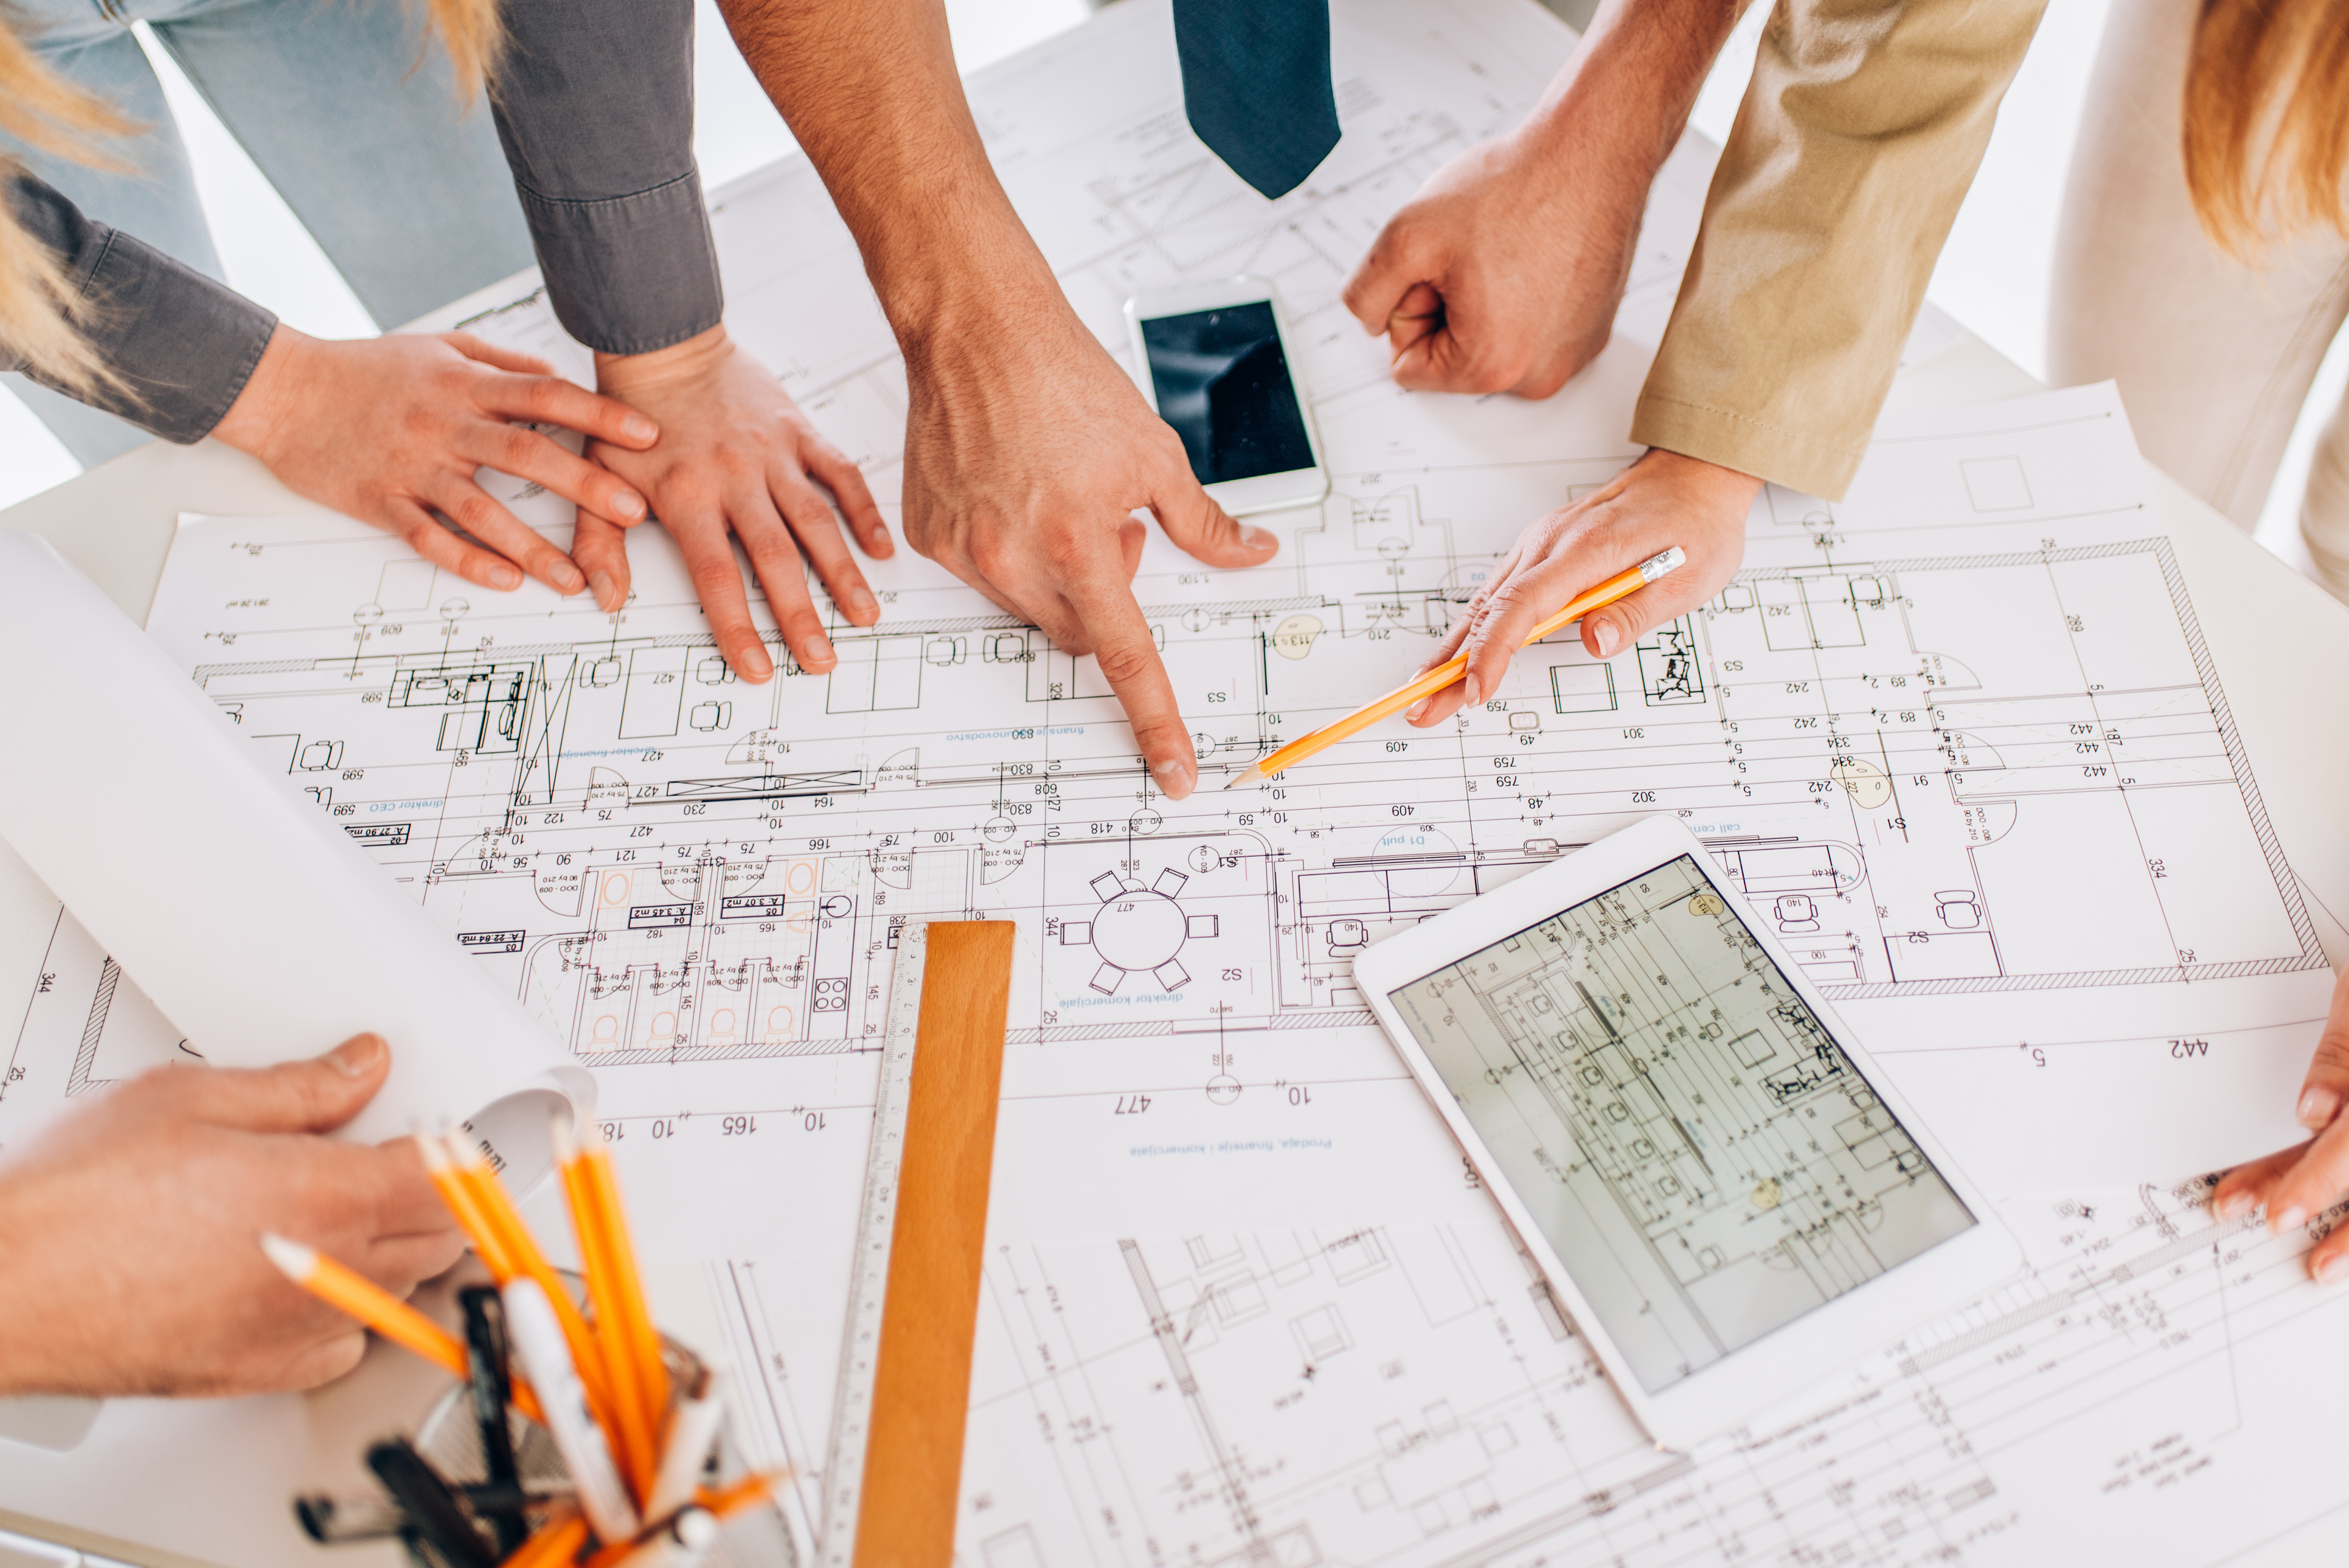 hands pointing at a project